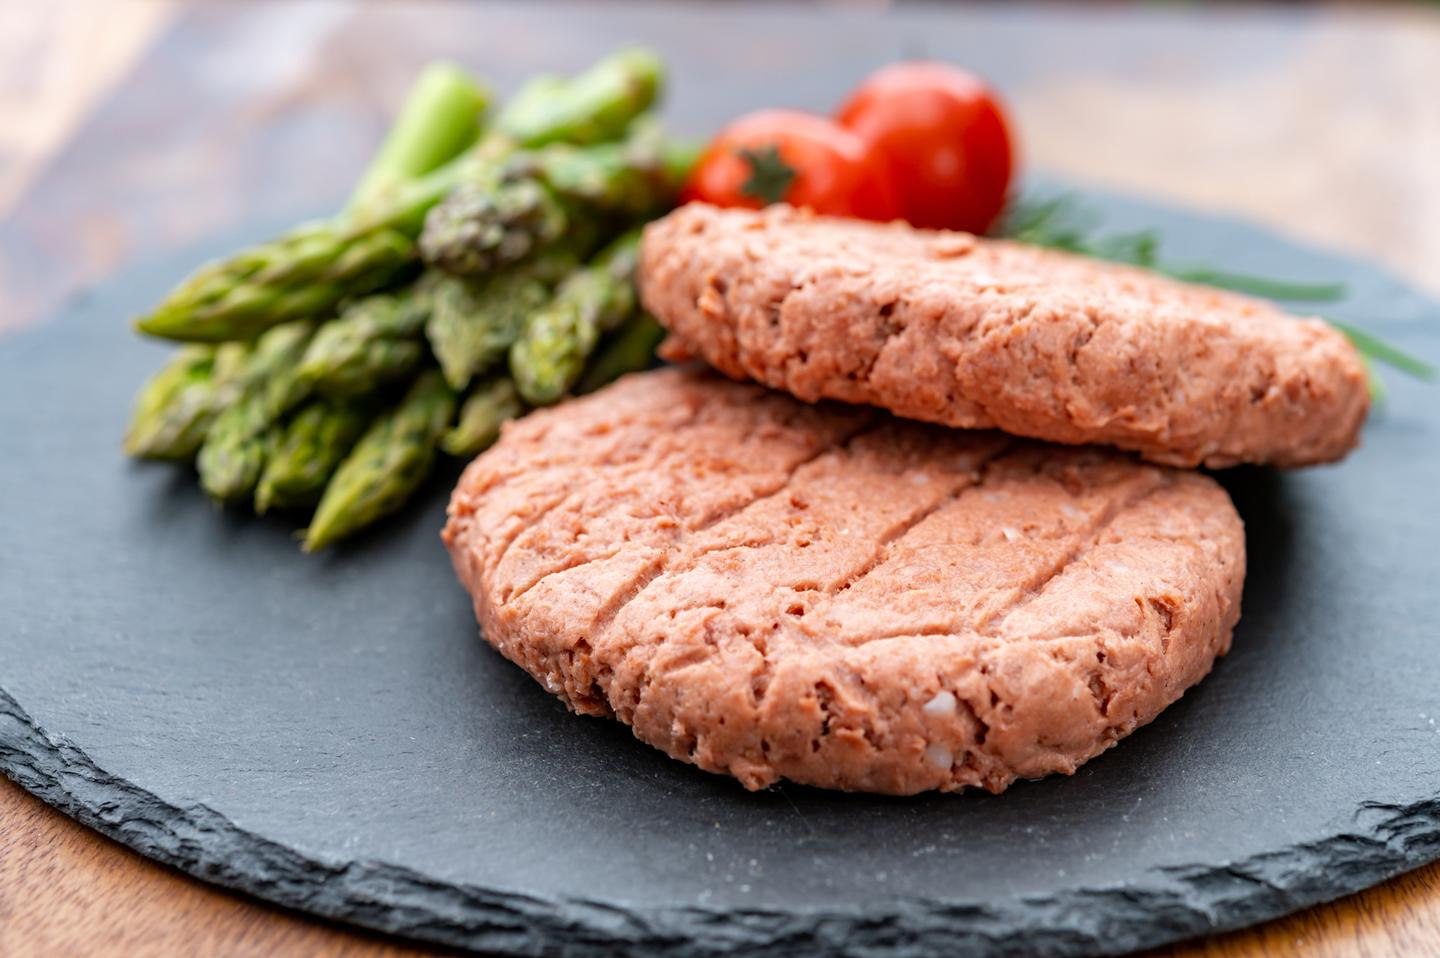 Patties made of a plant-based beef substitute were found to contain nutrients not present in beef – but beef patties were also found to contain nutrients not present in the substitute